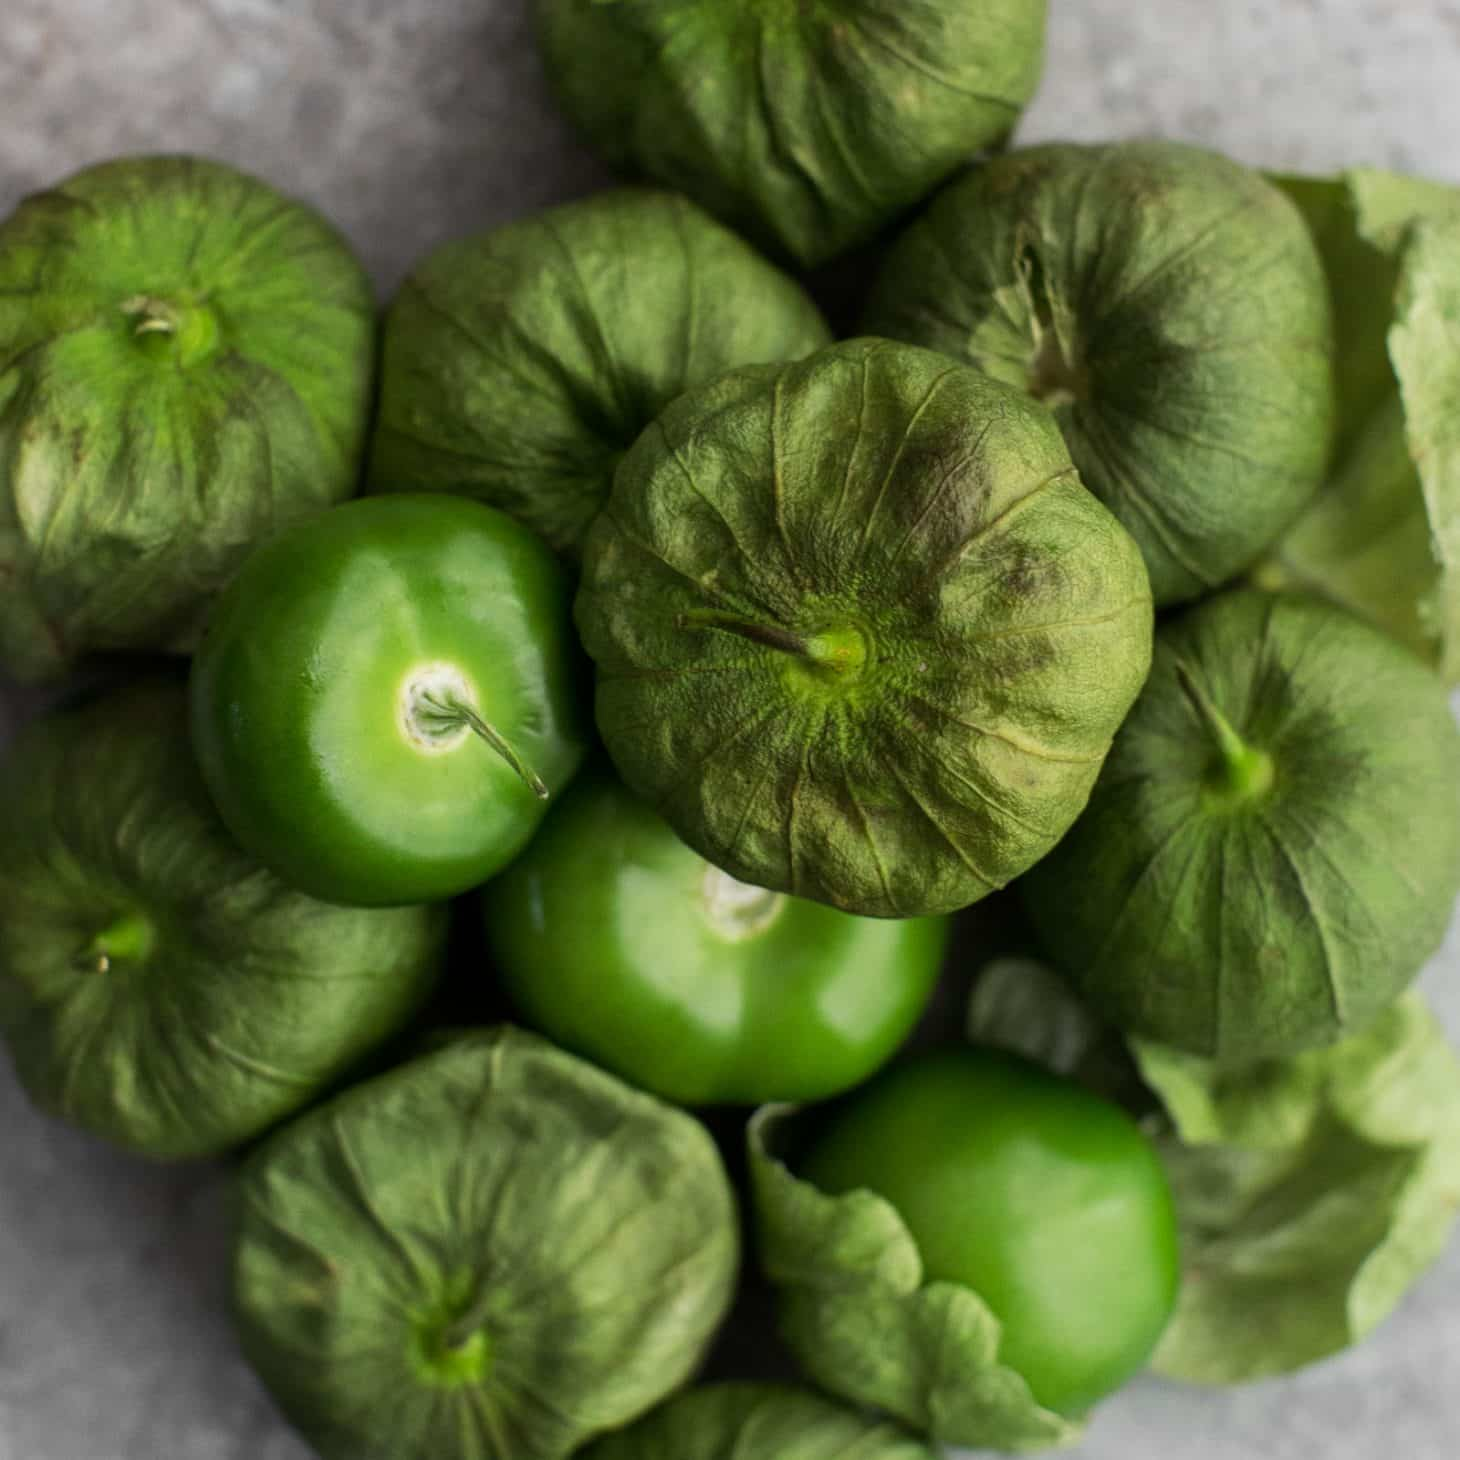 Tomatillos | Explore an Ingredient